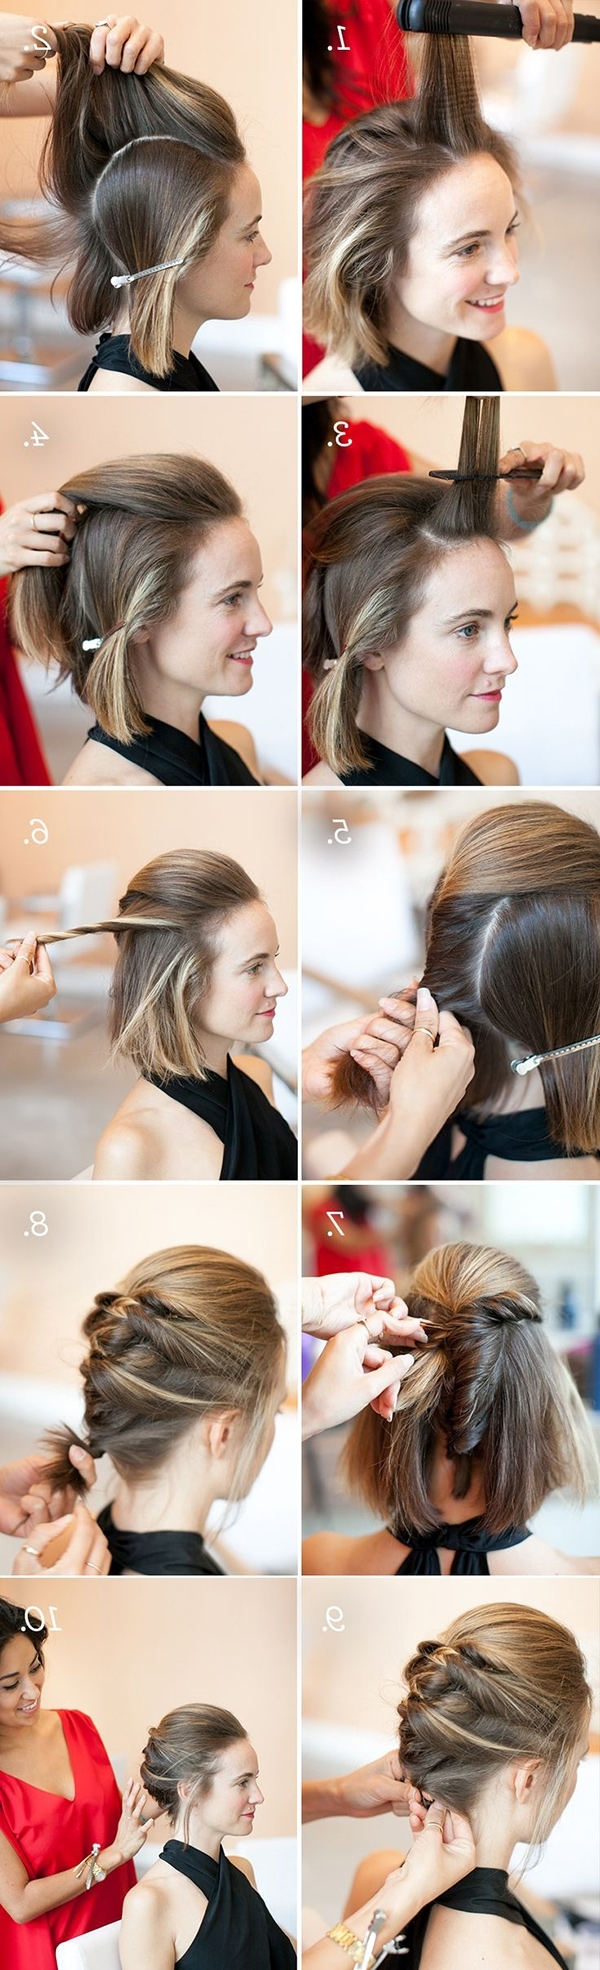 14 Gorgeous Prom Hairstyles For Short Hair – Gurl | Gurl With Updo Hairstyles For Short Hair Prom (View 1 of 15)